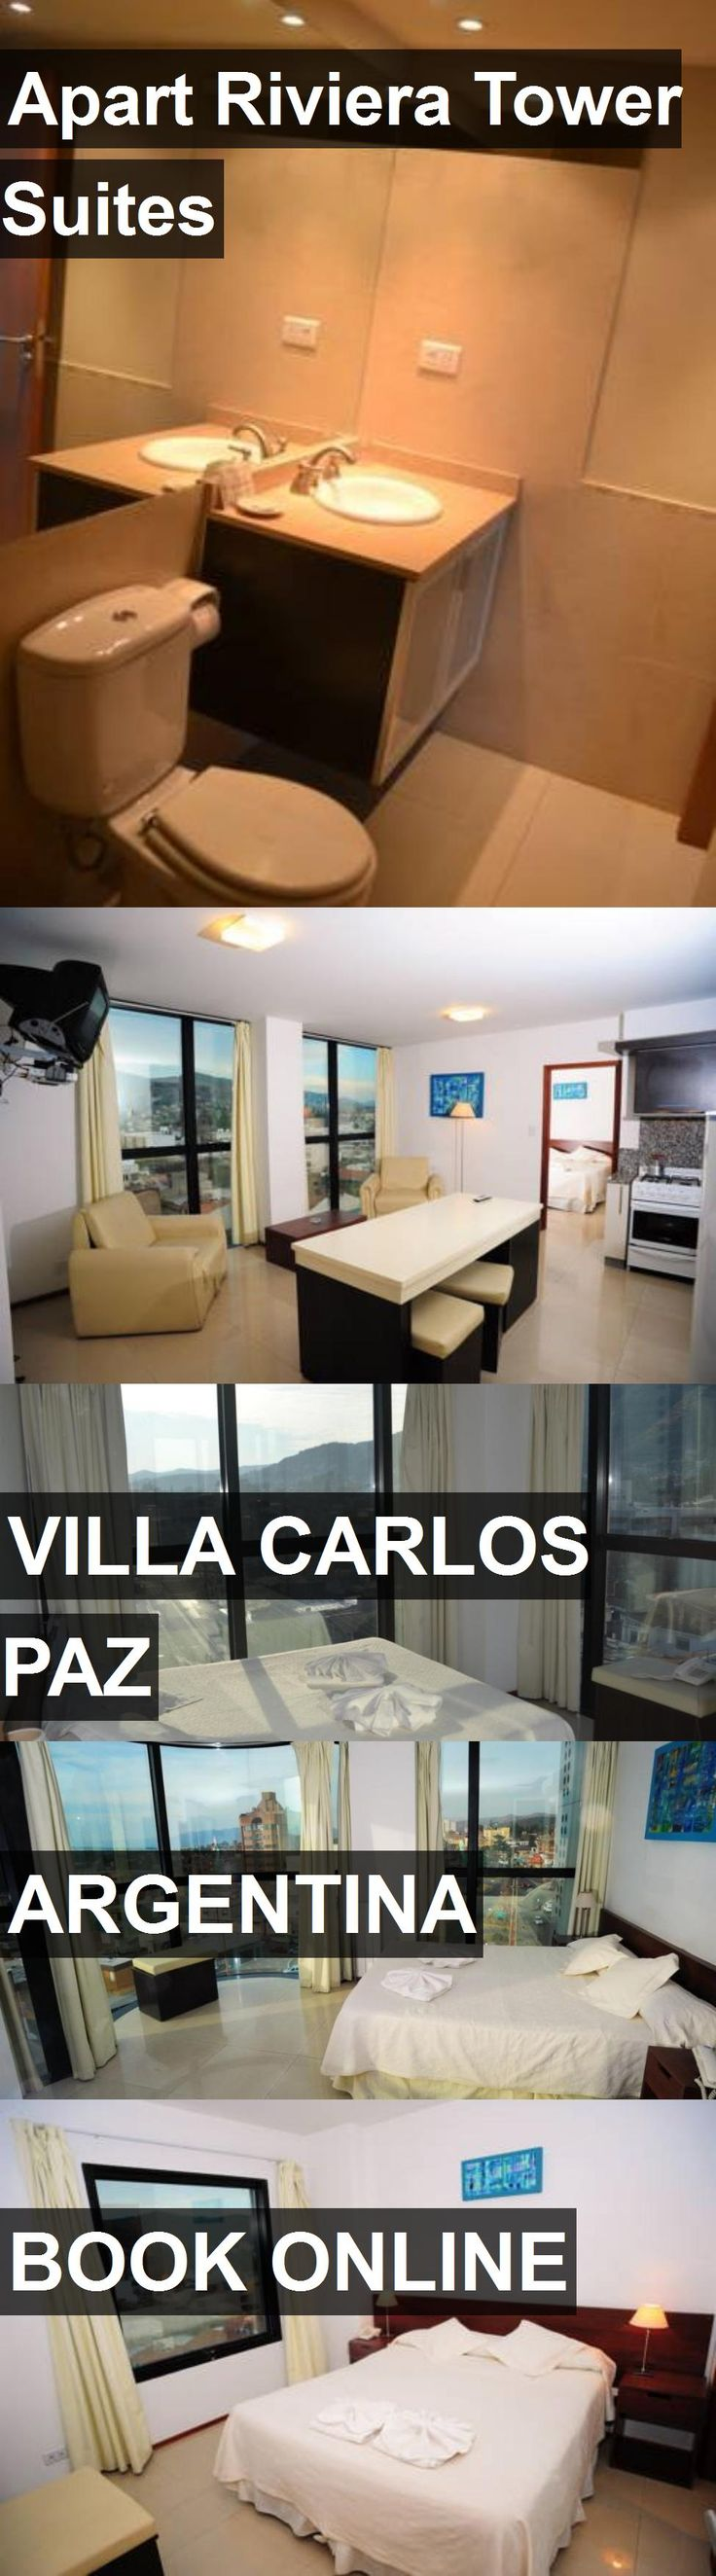 Hotel Apart Riviera Tower Suites in Villa Carlos Paz, Argentina. For more information, photos, reviews and best prices please follow the link. #Argentina #VillaCarlosPaz #travel #vacation #hotel